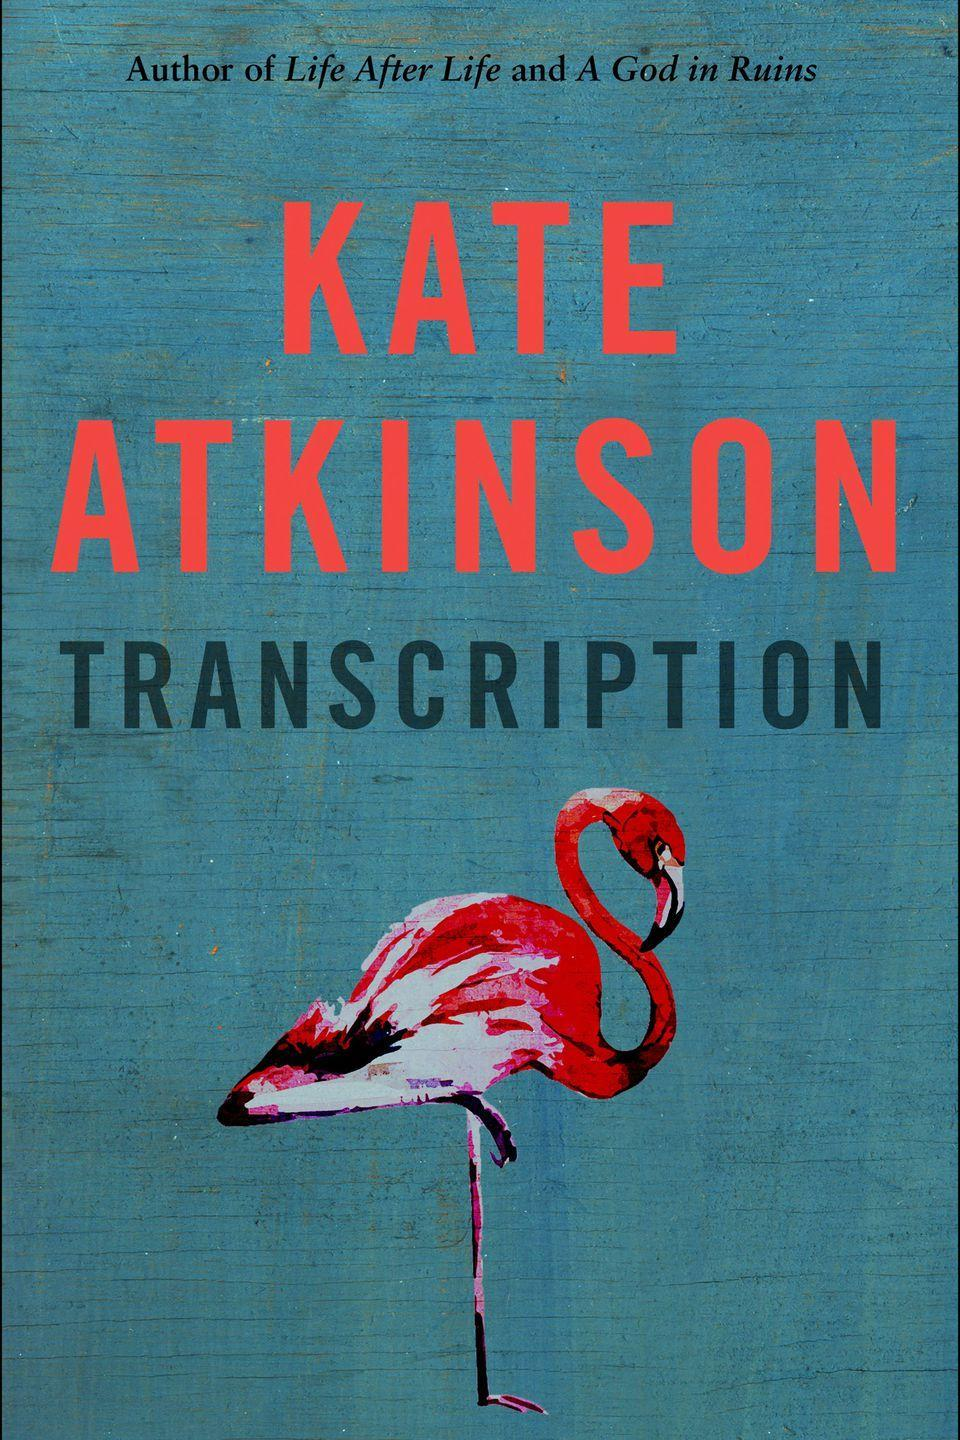 "<p><a href=""http://foyles.co.uk/witem/fiction-poetry/transcription,kate-atkinson-9780857525888"" rel=""nofollow noopener"" target=""_blank"" data-ylk=""slk:BUY NOW"" class=""link rapid-noclick-resp"">BUY NOW</a></p><p>""I swear I would read anything by the lady wizard Kate Atkinson, even her shopping list. This major new novel about a young woman recruited into the wartime secret service promises to be as thrillingly good as <em>Life After Life</em>. I can't wait."" </p><p><em>Transcription by Kate Atkinson, £20, <a href=""http://foyles.co.uk/witem/fiction-poetry/transcription,kate-atkinson-9780857525888"" rel=""nofollow noopener"" target=""_blank"" data-ylk=""slk:Foyles"" class=""link rapid-noclick-resp"">Foyles</a></em></p>"